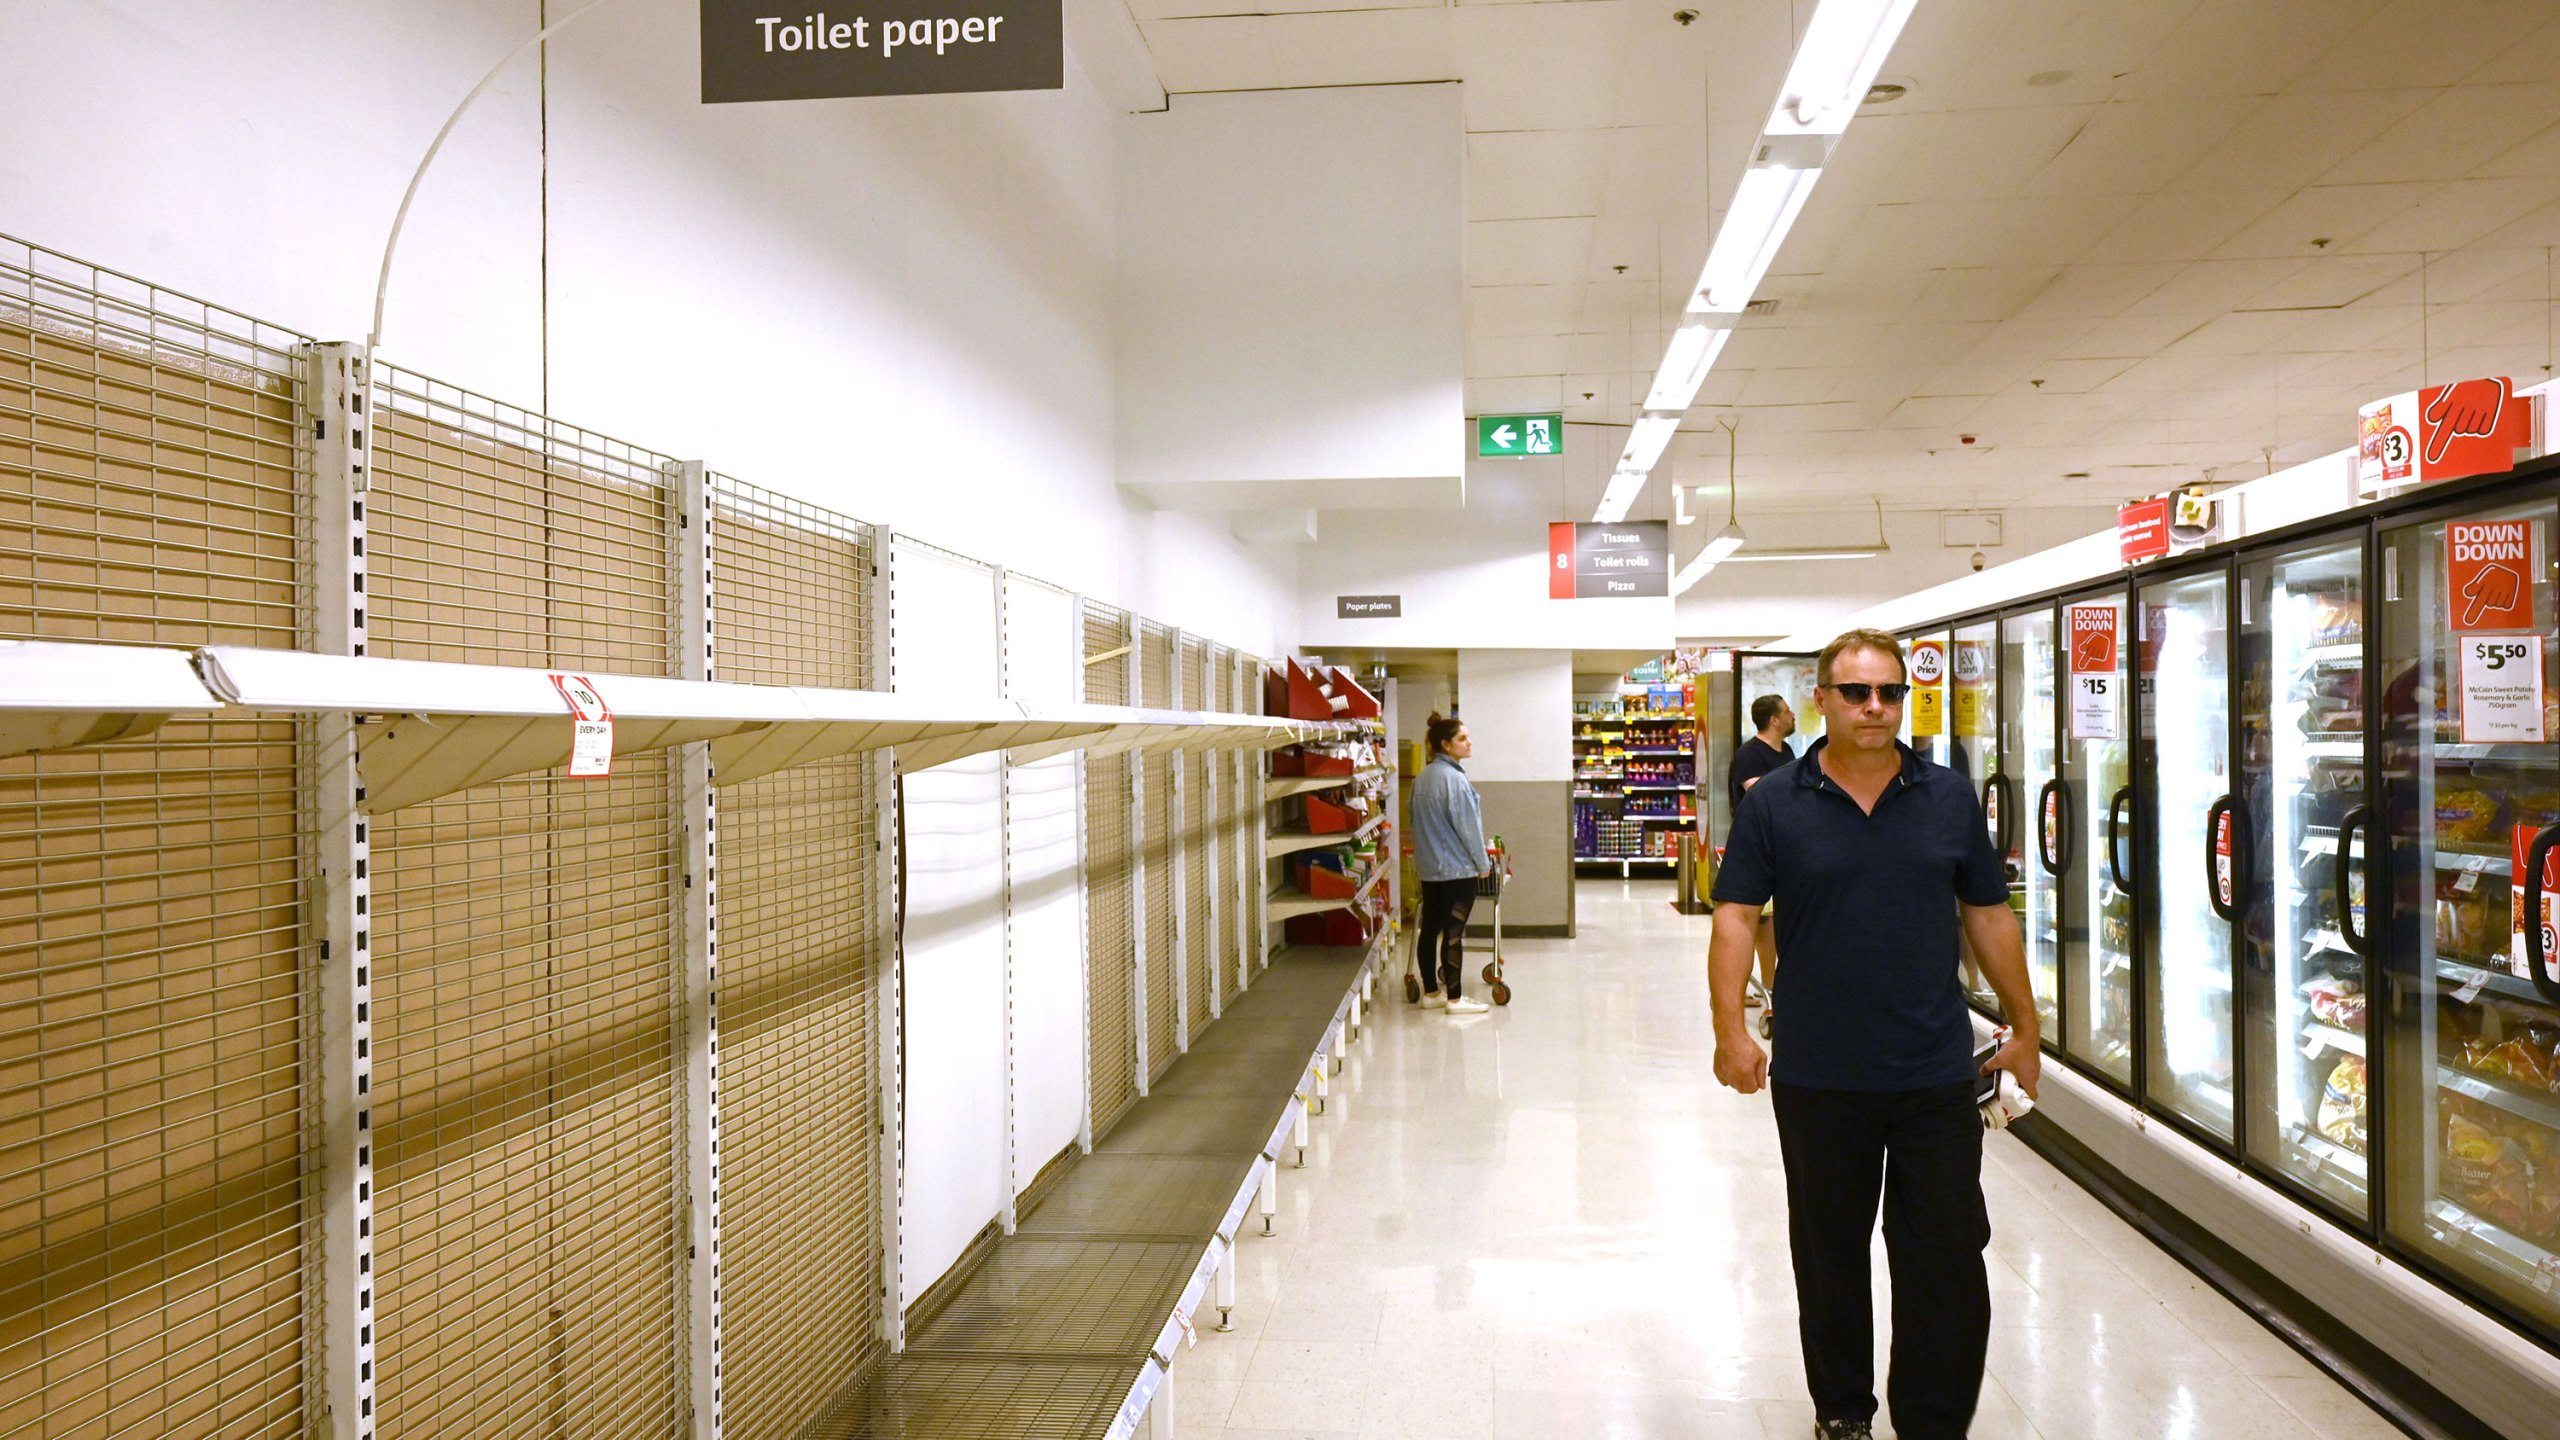 Shelves are empty of toilet paper in a supermarket in Sydney, Australia. (Photo by PETER PARKS/AFP via Getty Images)